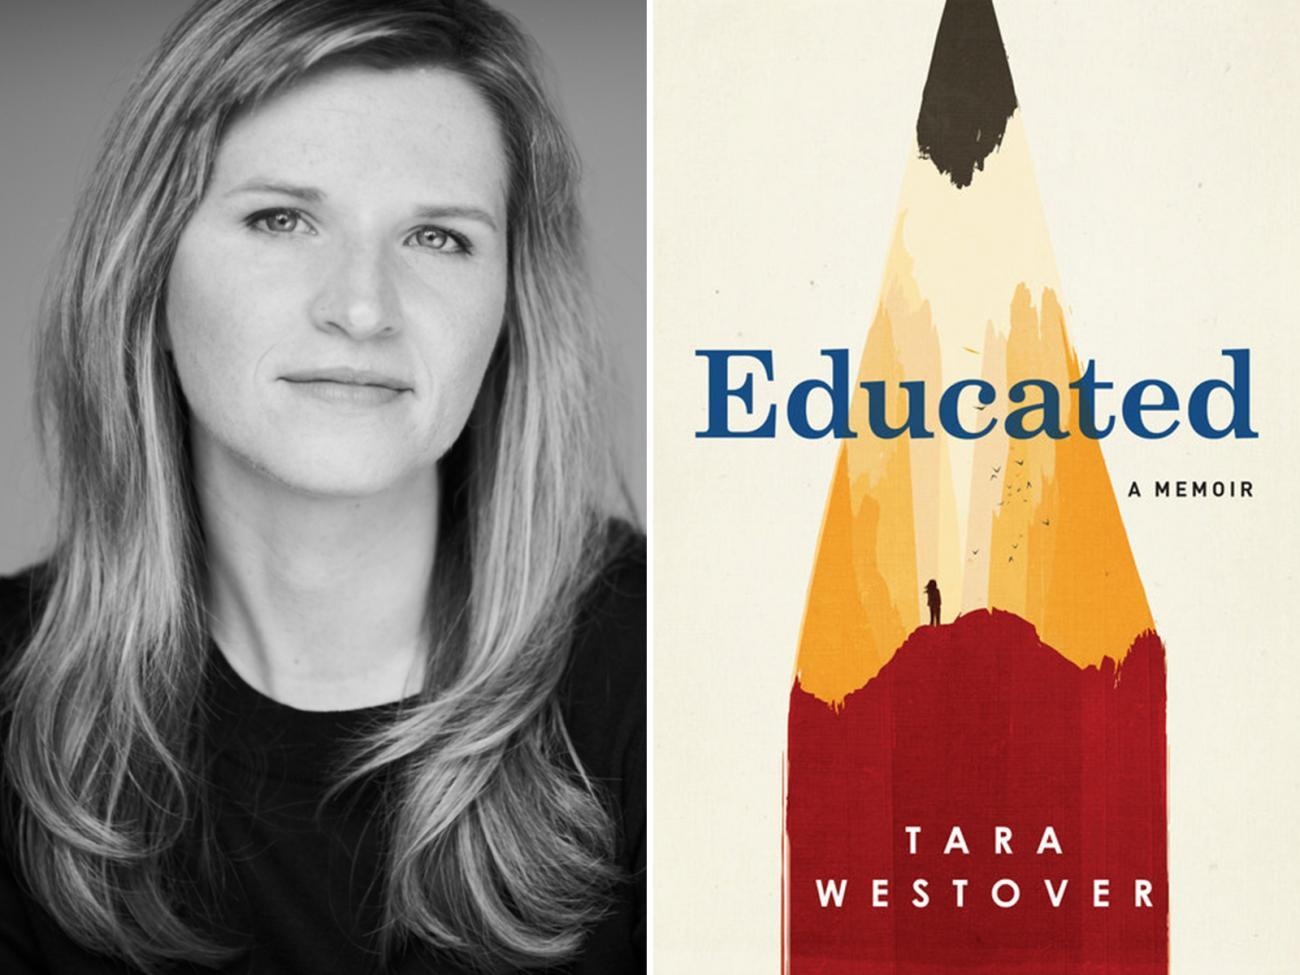 The last book I read was... - Educated by Tara Westover. Don't even hesitate on this one!